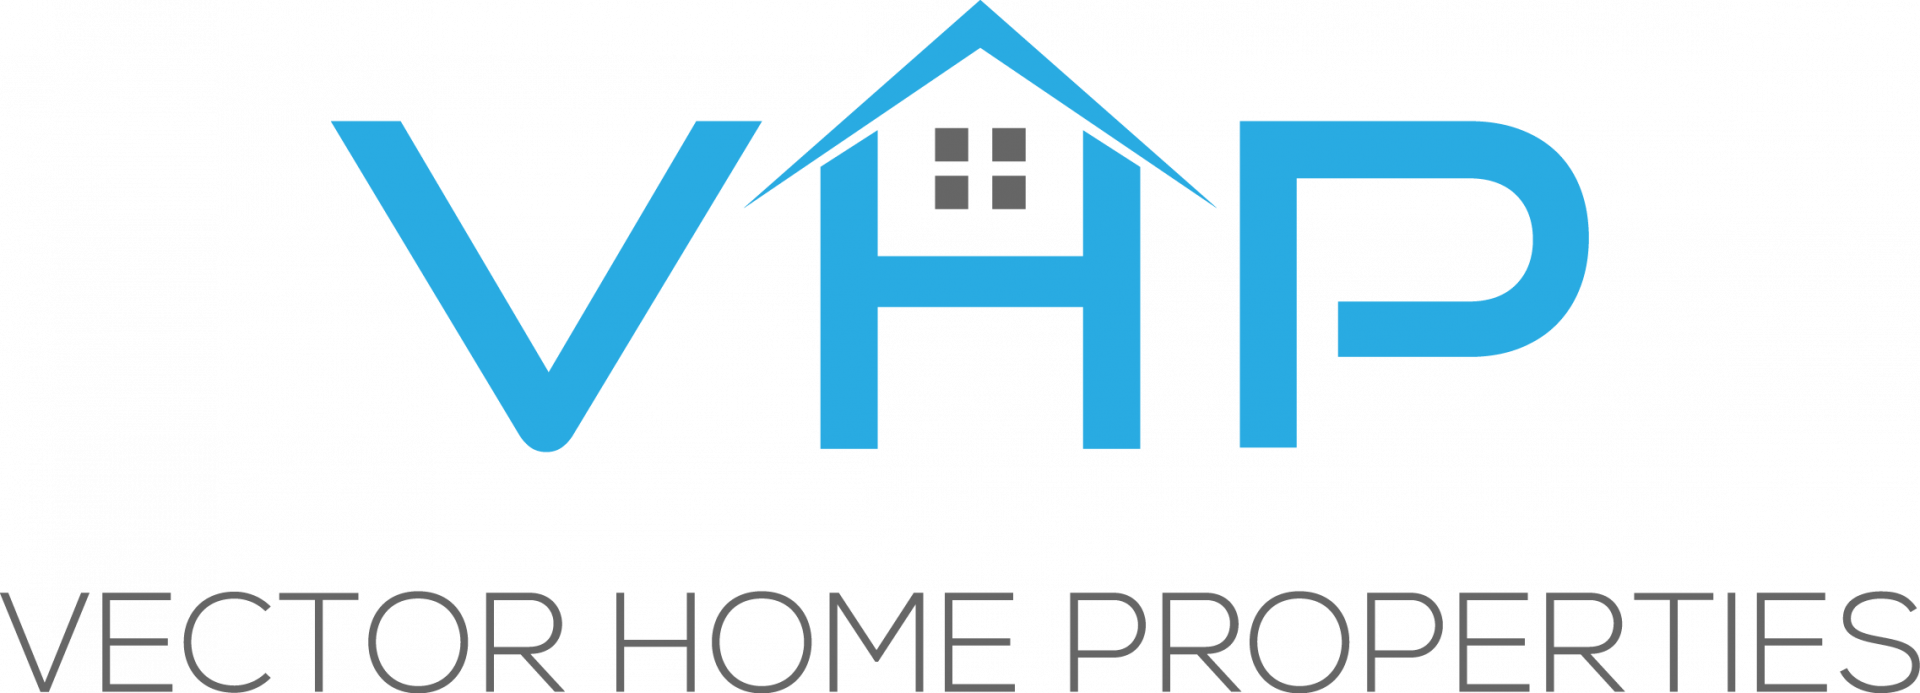 Vector Home Properties logo